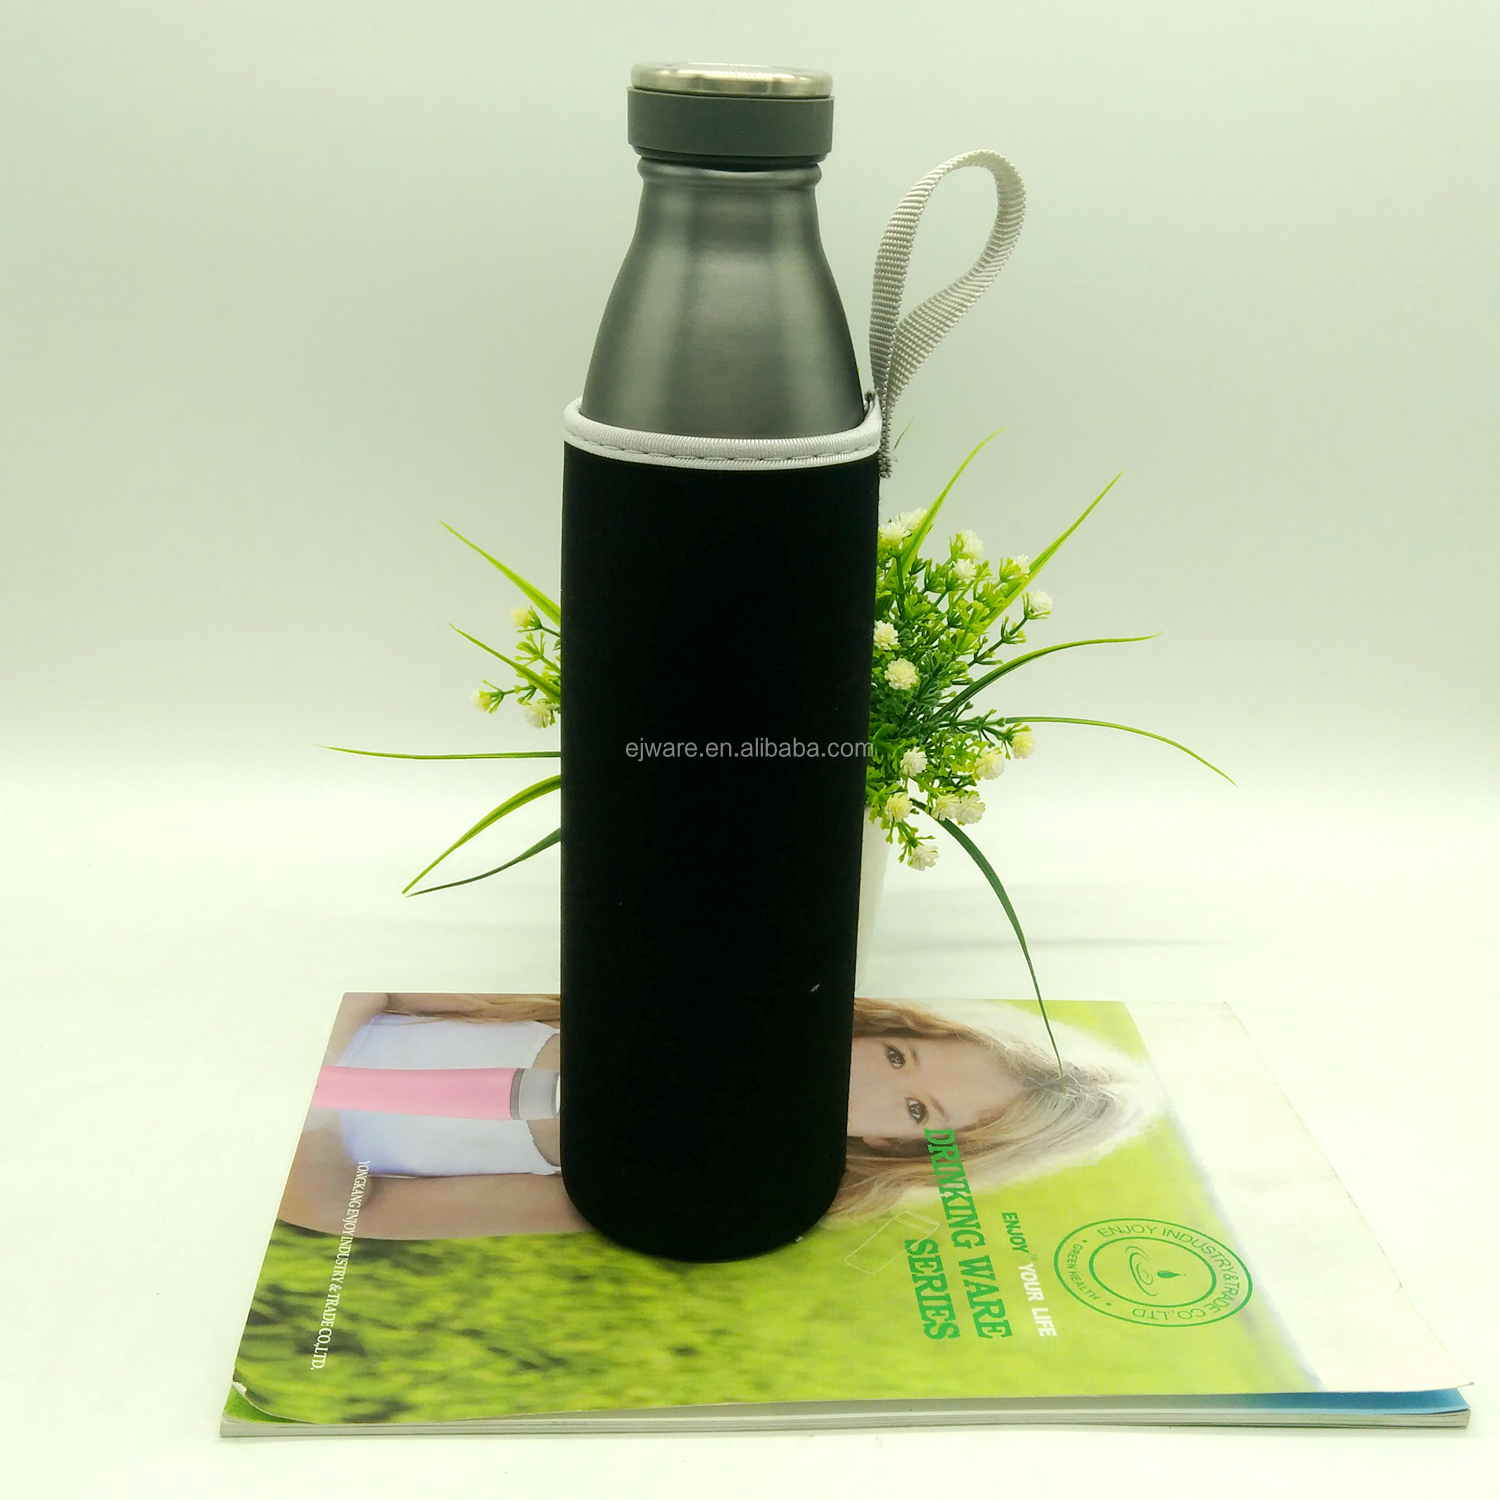 Bowling Shape Stainless Steel Bottle Eco Friendly Cola Drink Bottle Insulated Double Wall Stainless Steel